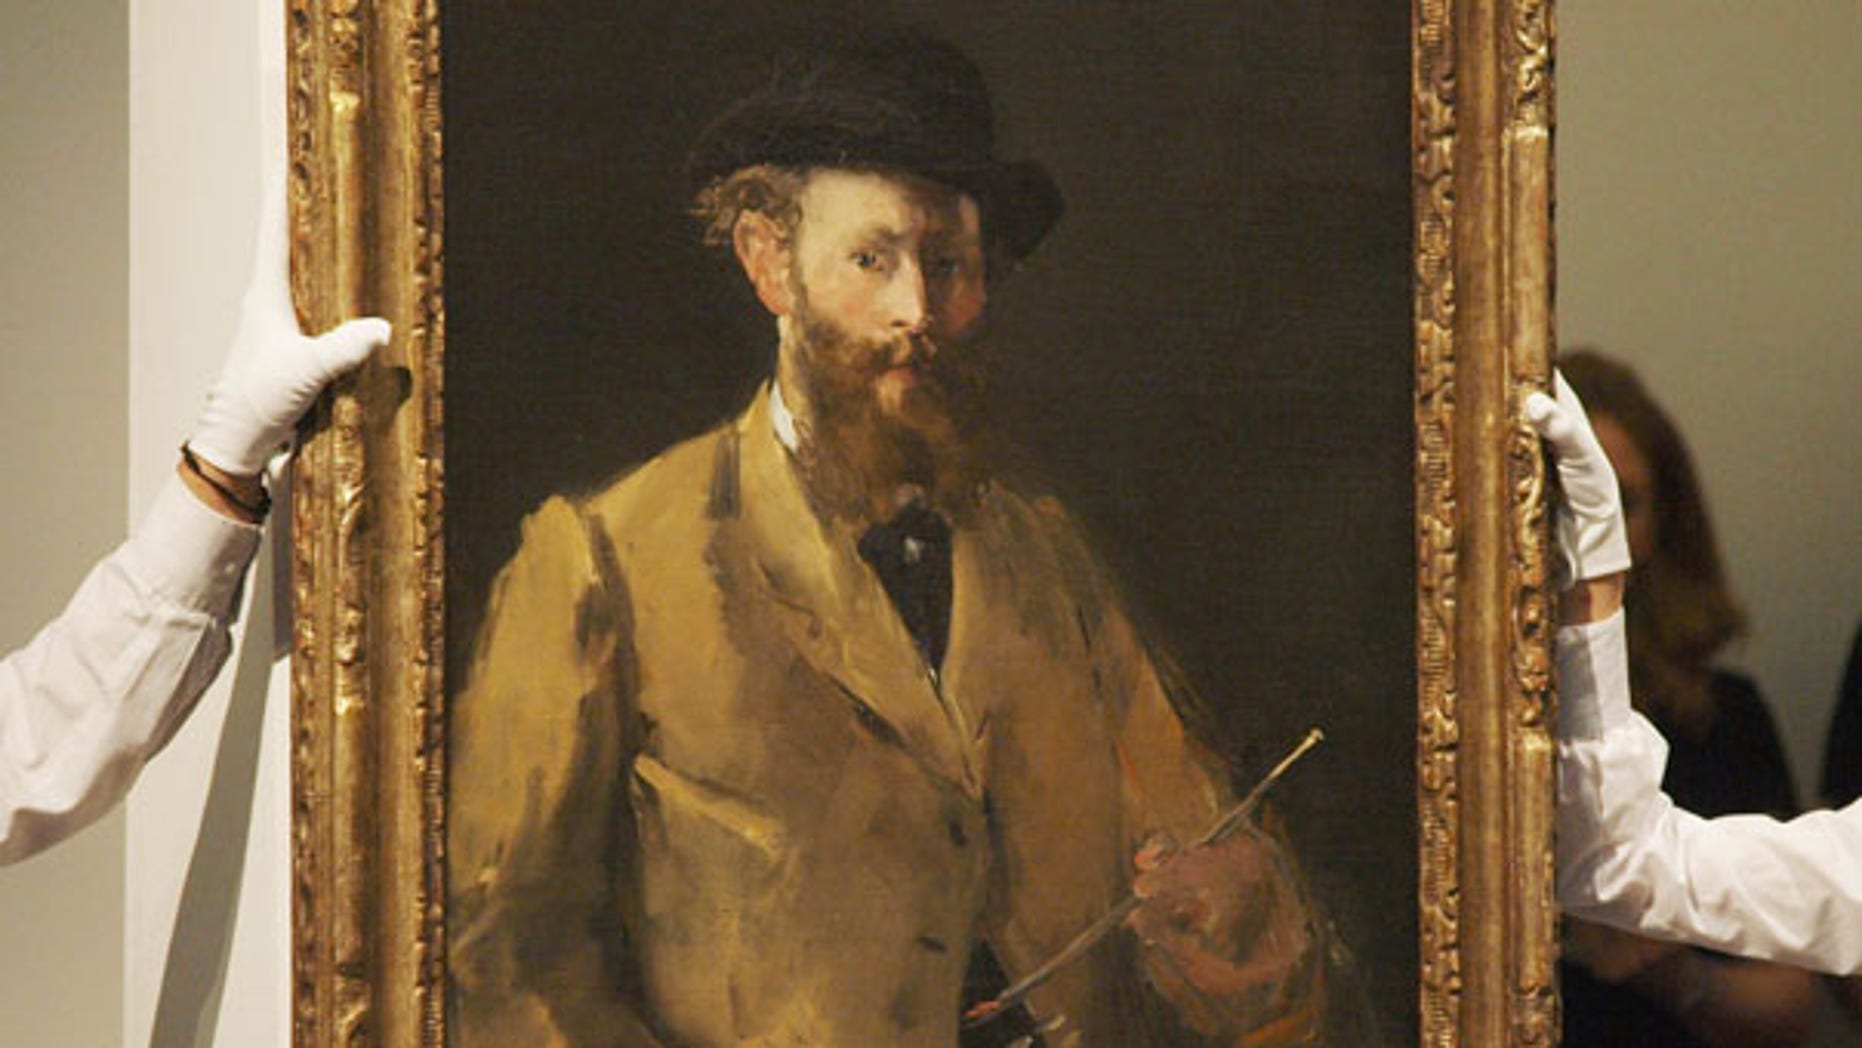 June 22: View of French Impressionist Edouard Manet's 'Self Portrait,' which sold at auction at Sotheby's in London for $33 million.